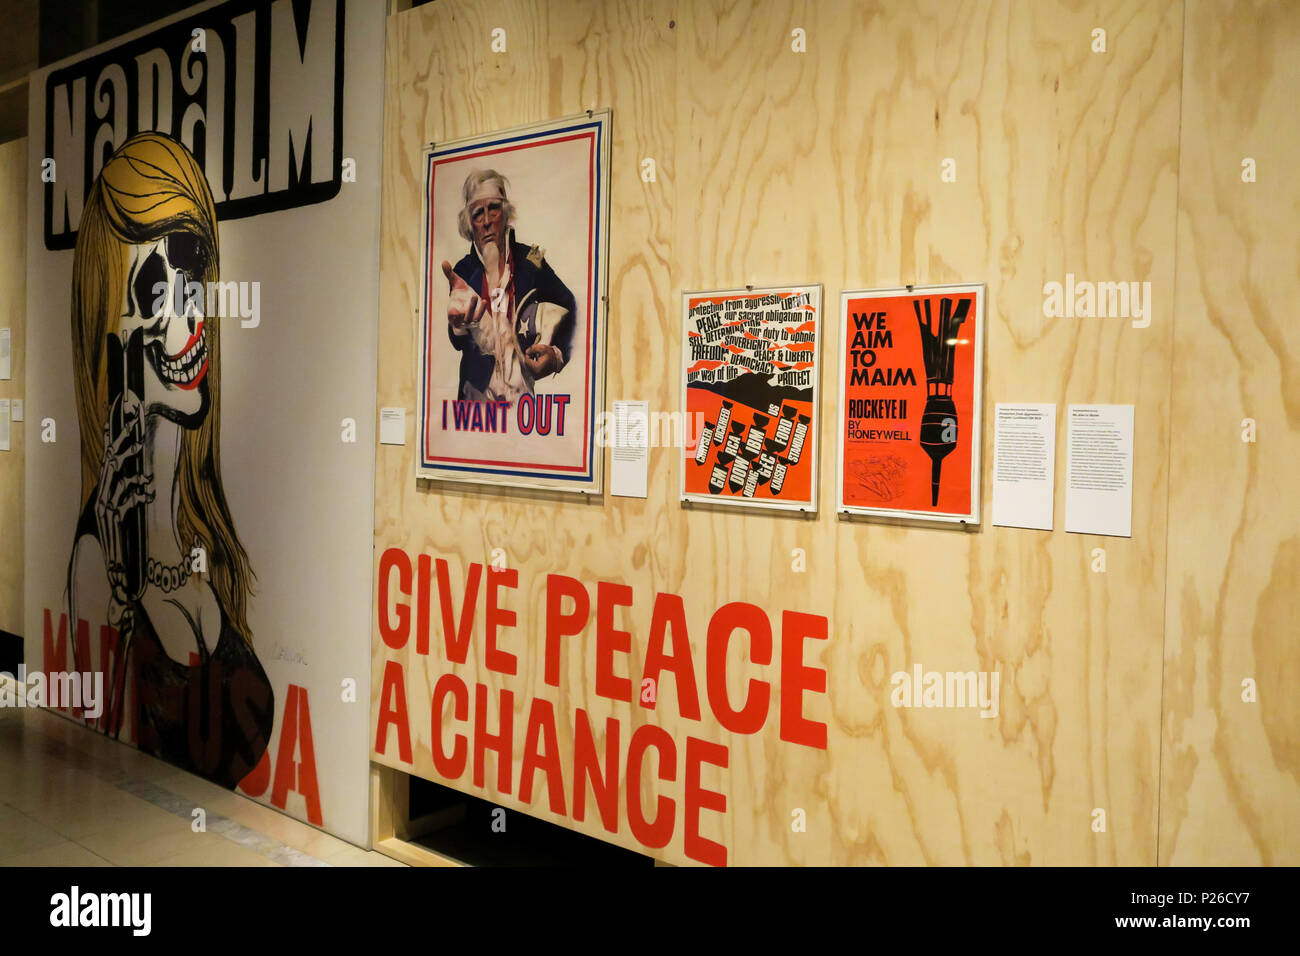 'Revolution: Remembering the 60s' Exhibit at the Main New York Public Library, NYC, USA - Stock Image